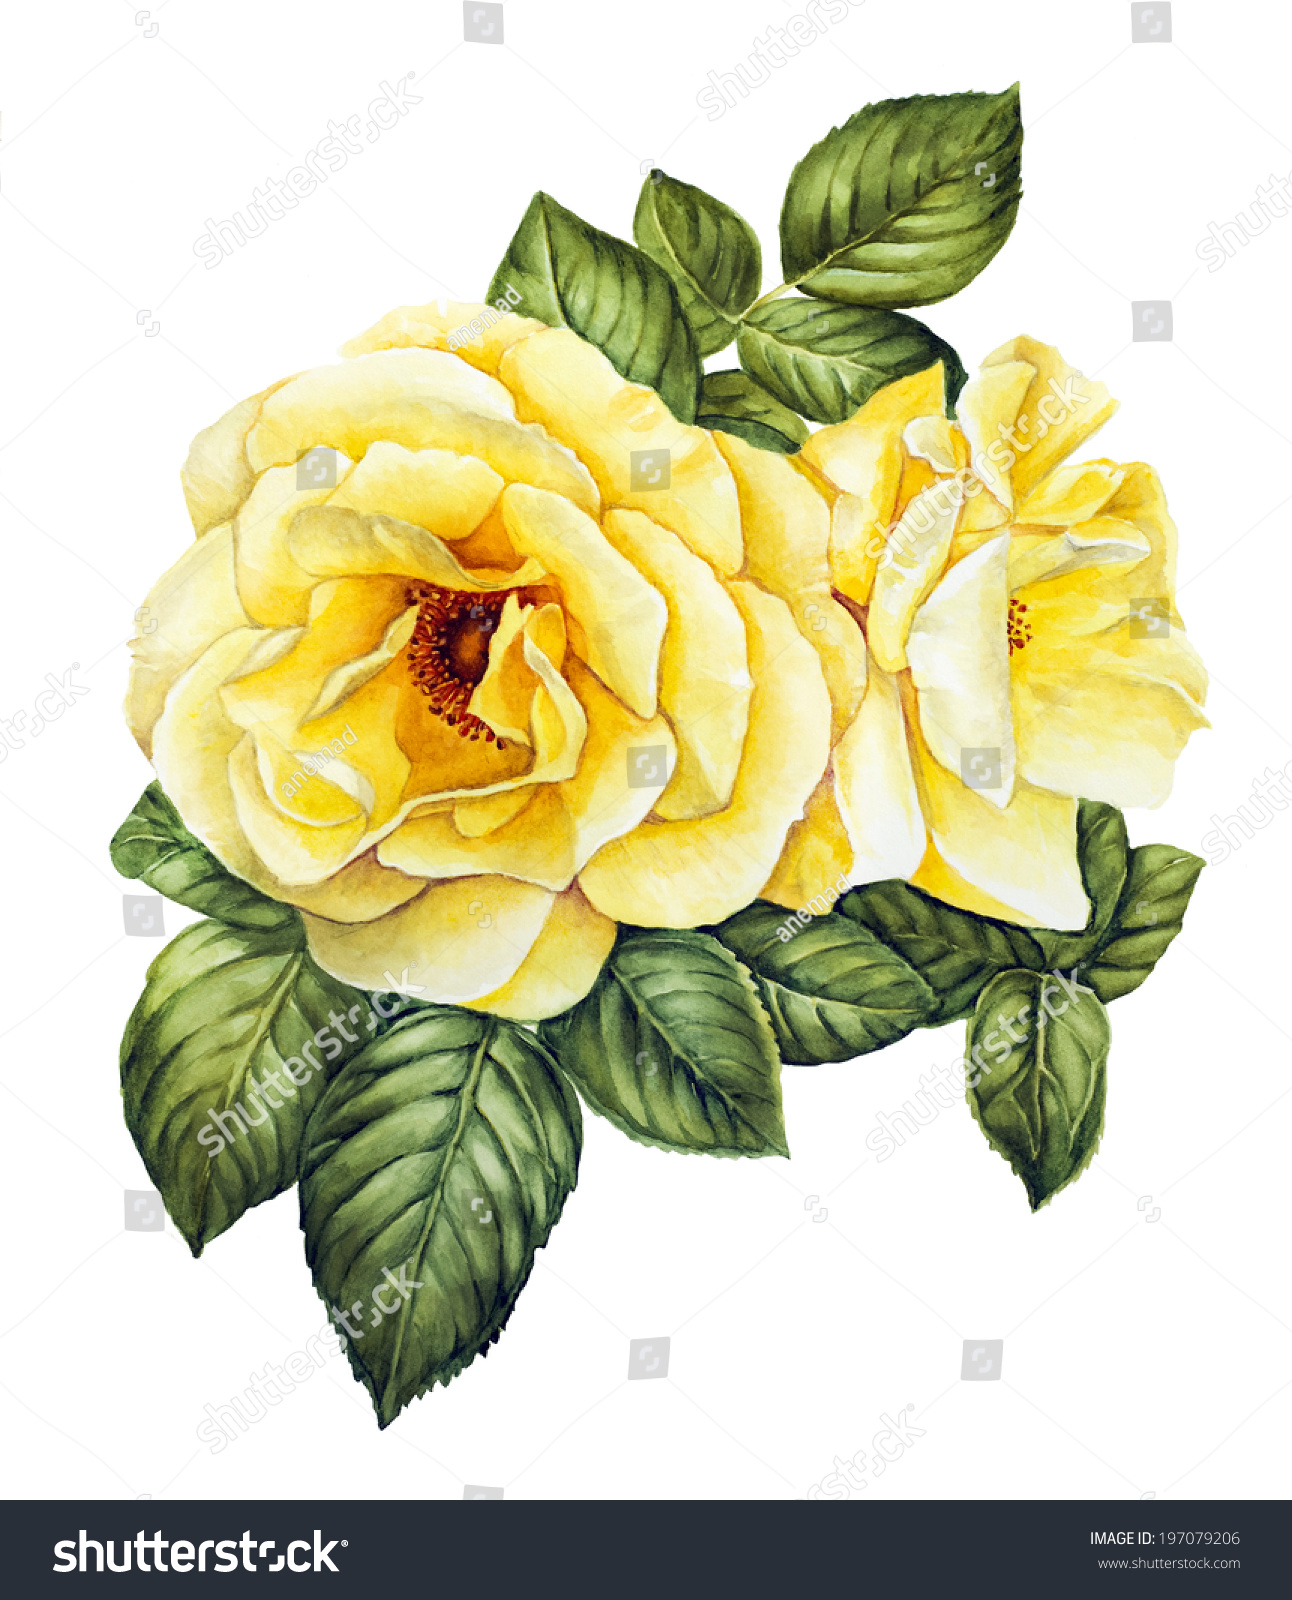 Yellow rose flower watercolor stock illustration 197079206 yellow rose flower watercolor dhlflorist Image collections